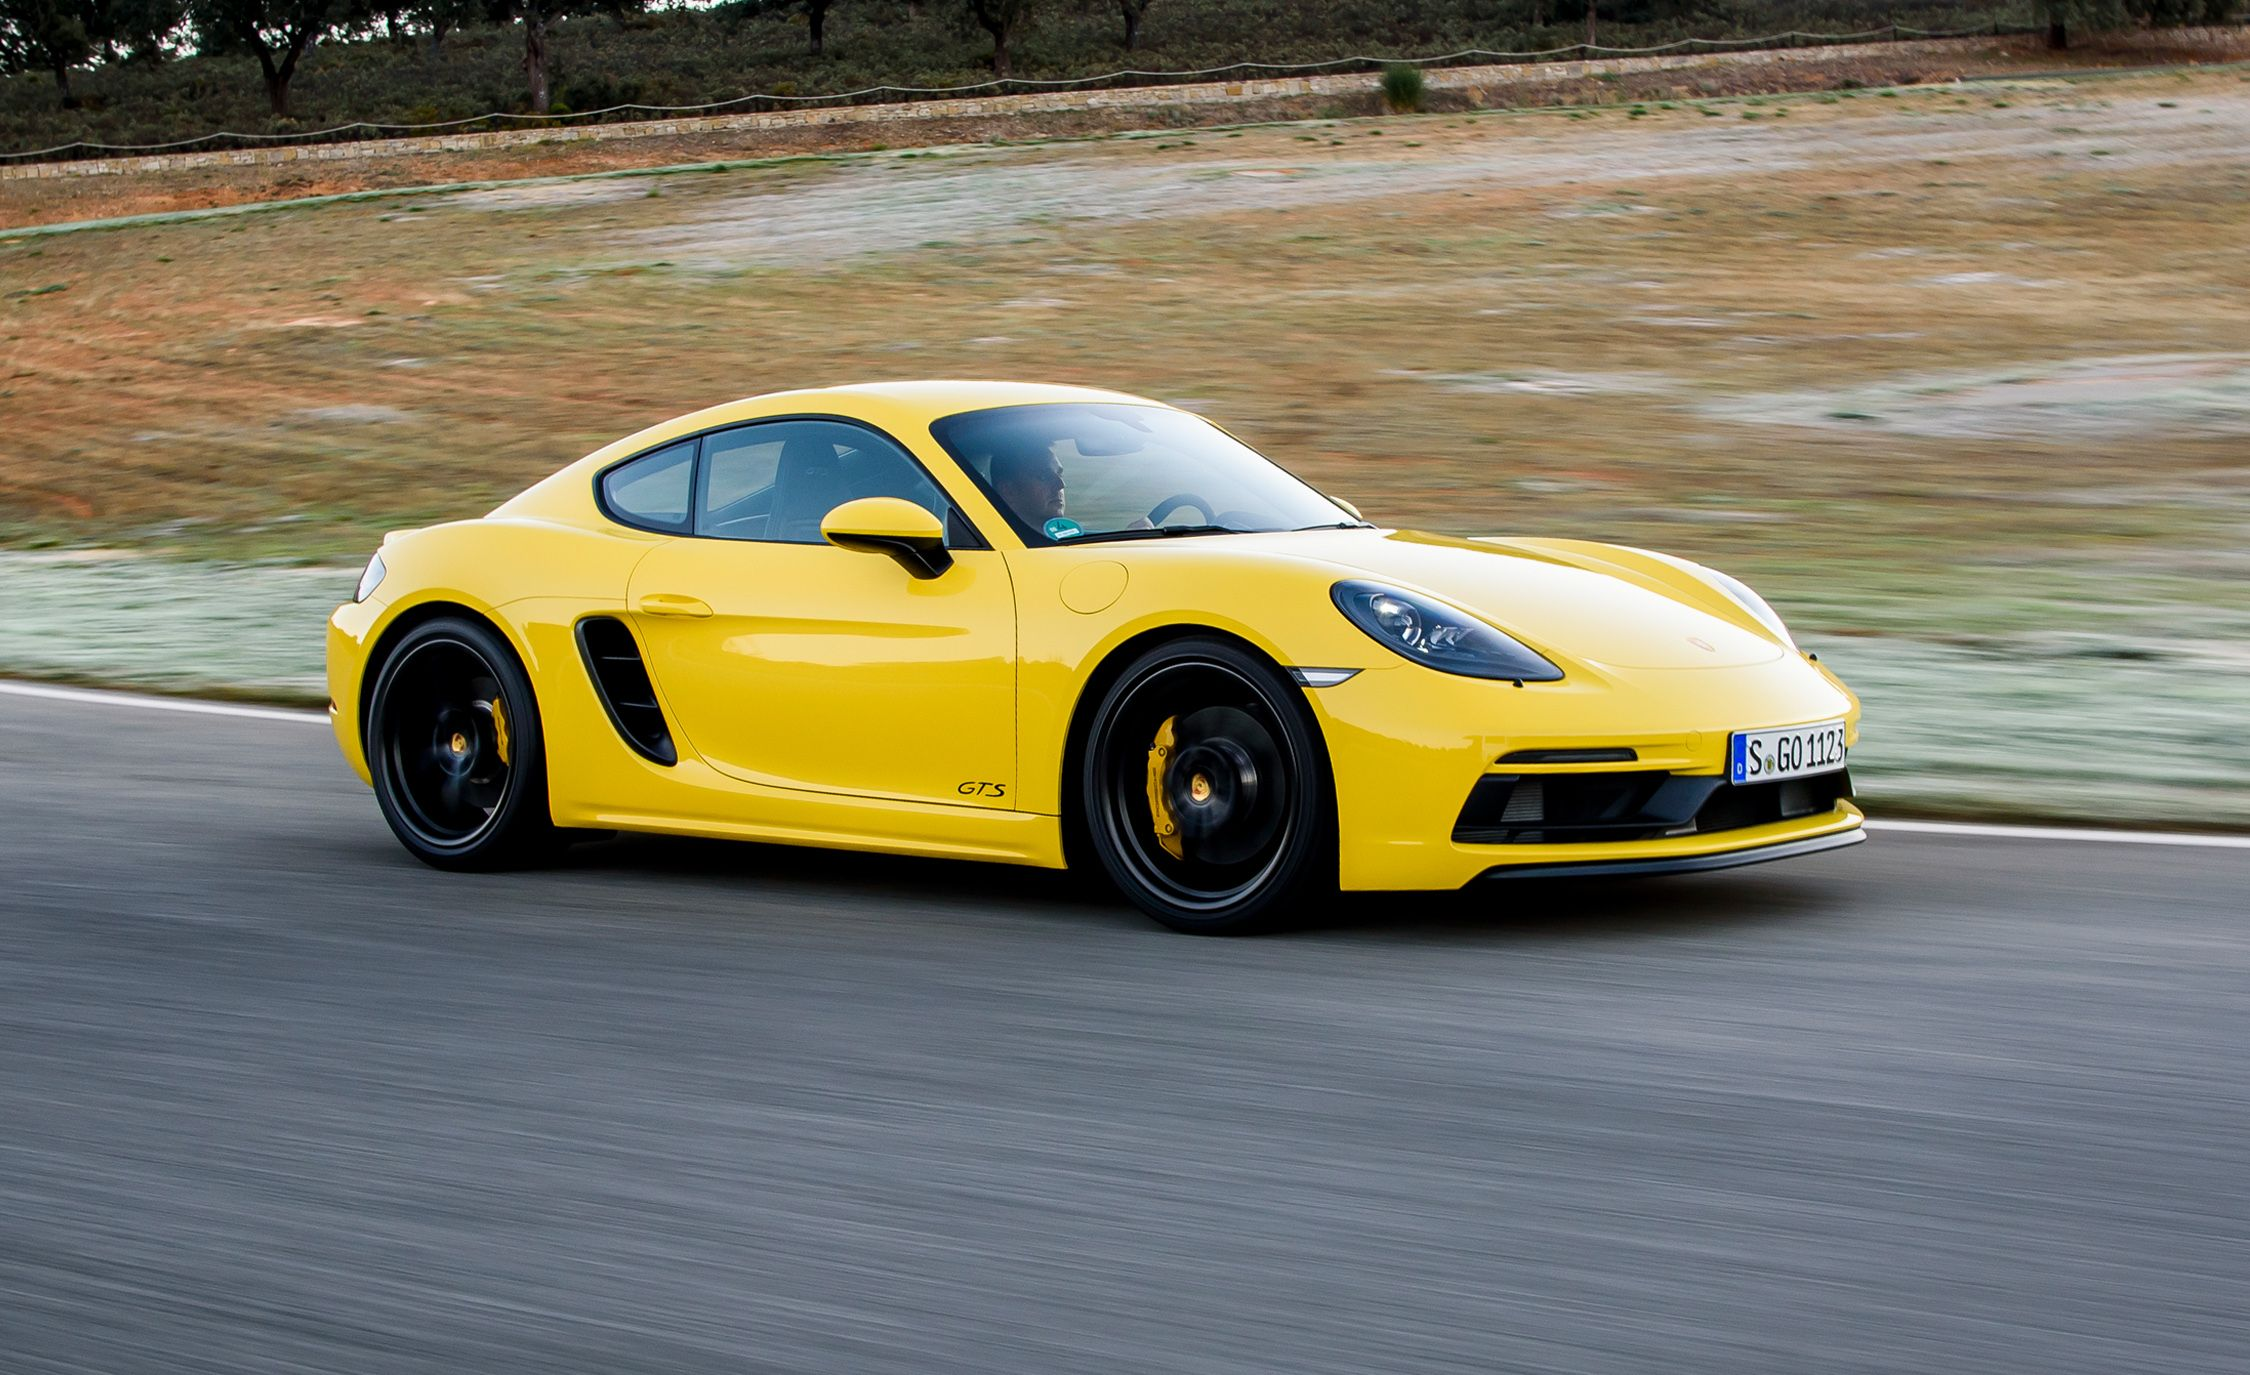 Porsche 718 Cayman Price, Photos, And Specs